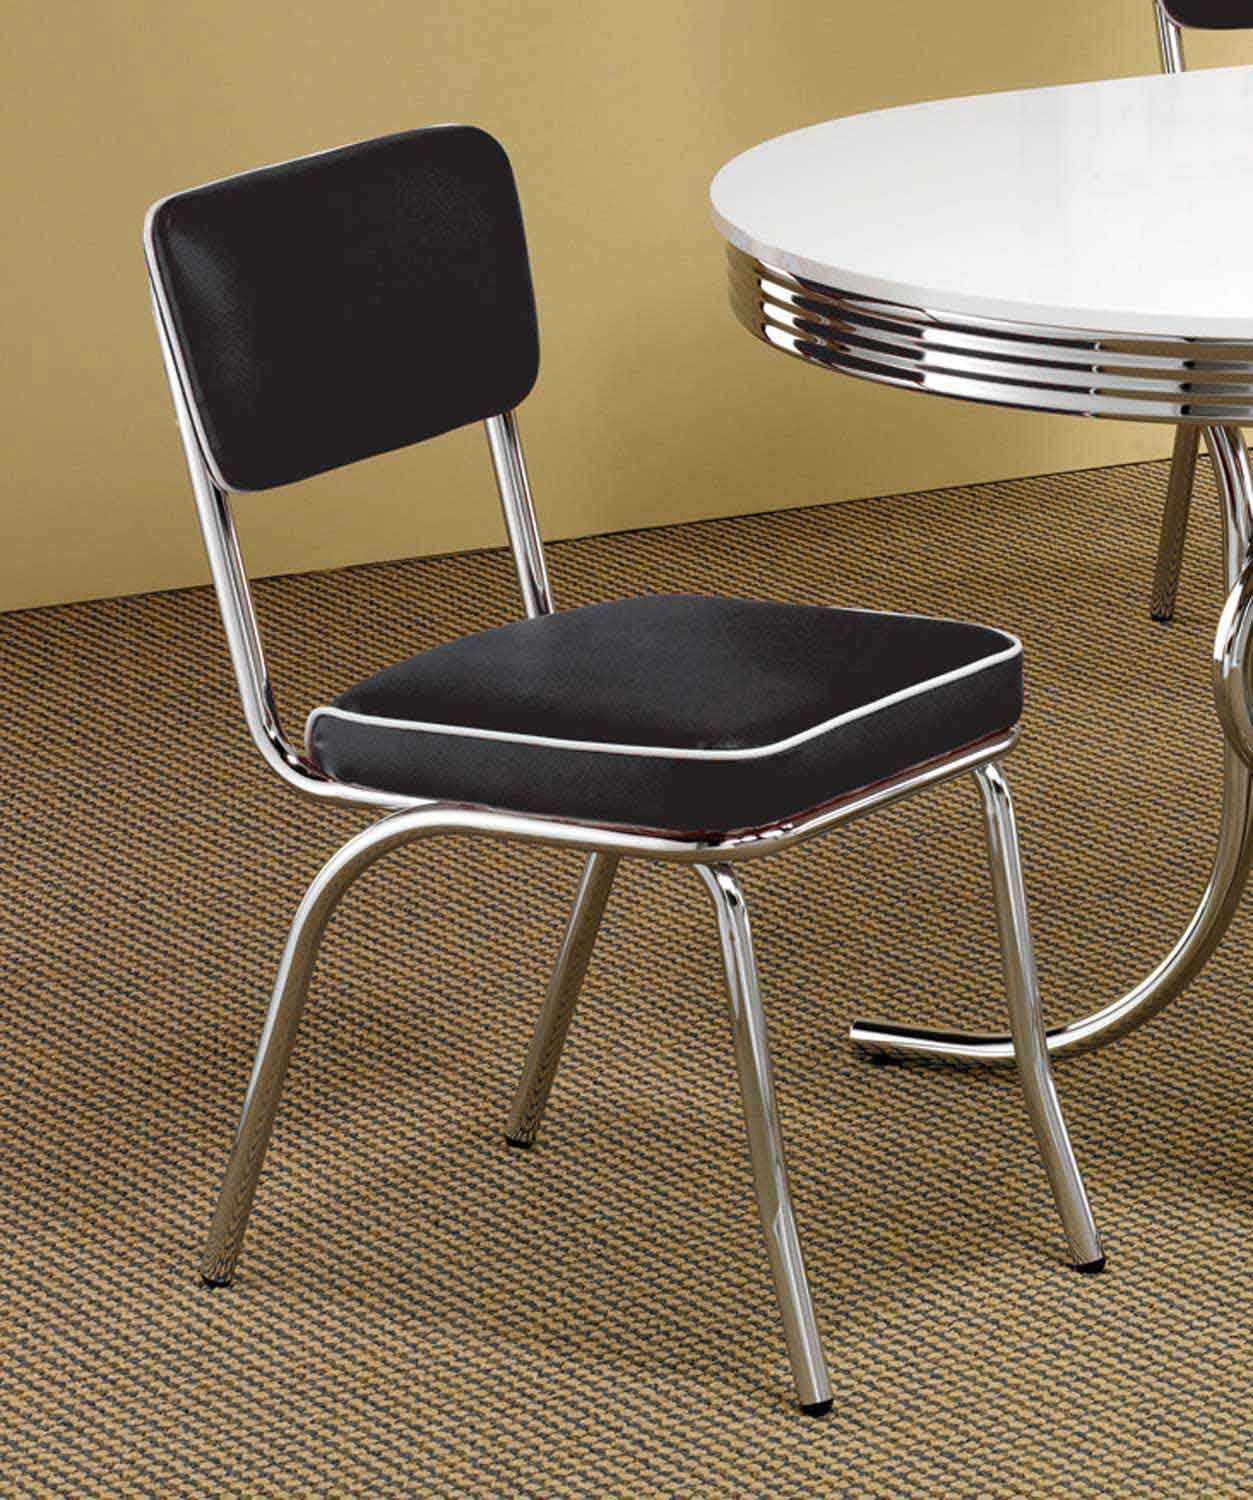 Coaster Mix & Match Chair - Black